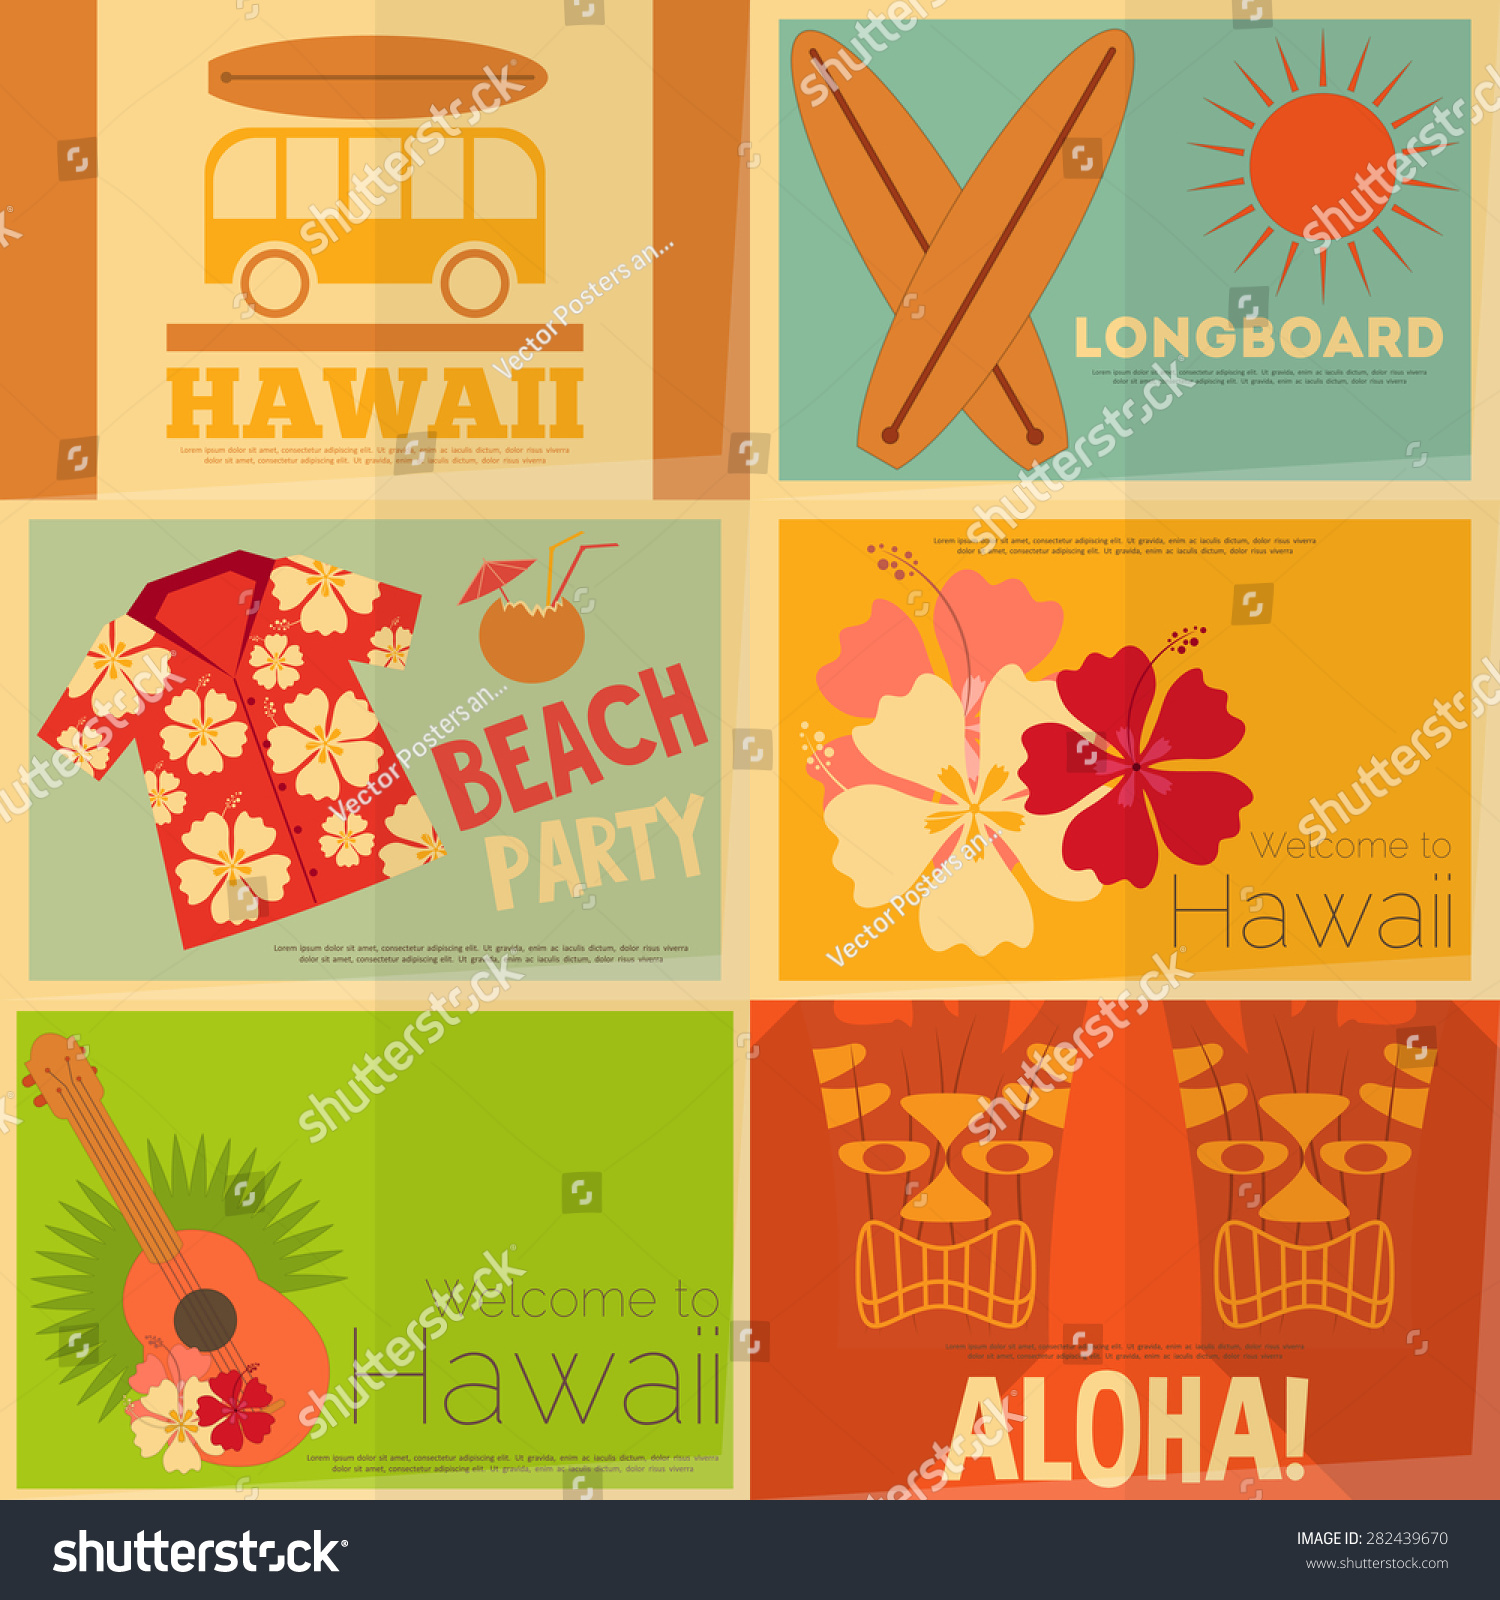 Hawaii Surf Retro Mini Posters Collection in Flat Design Style Layered file Vector Illustration